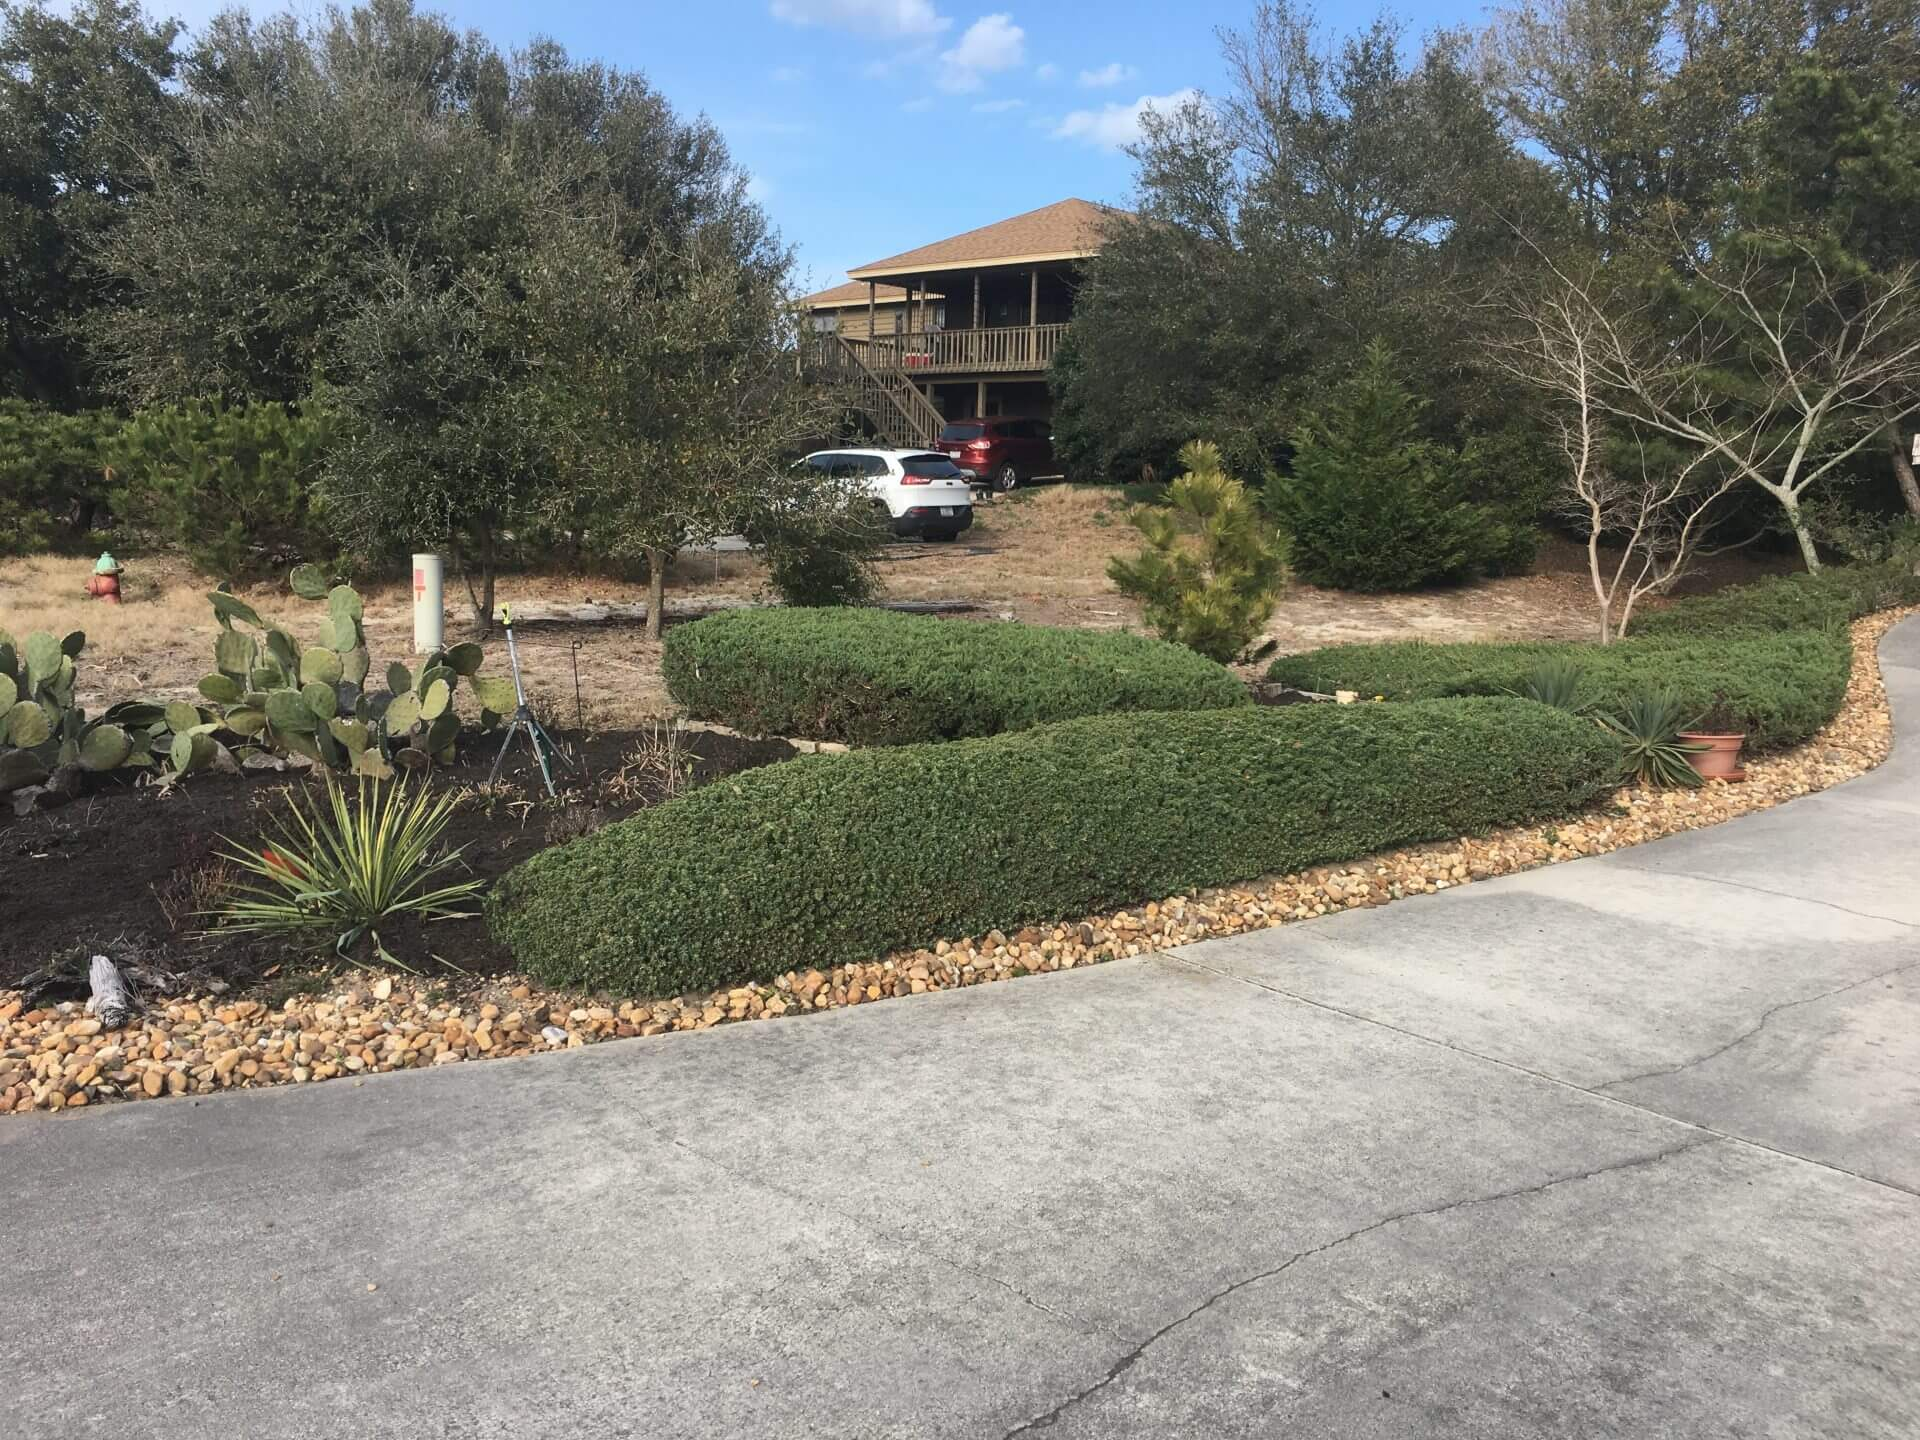 PROJECT: MOW GRASS AND MAINTAIN LANDSCAPING